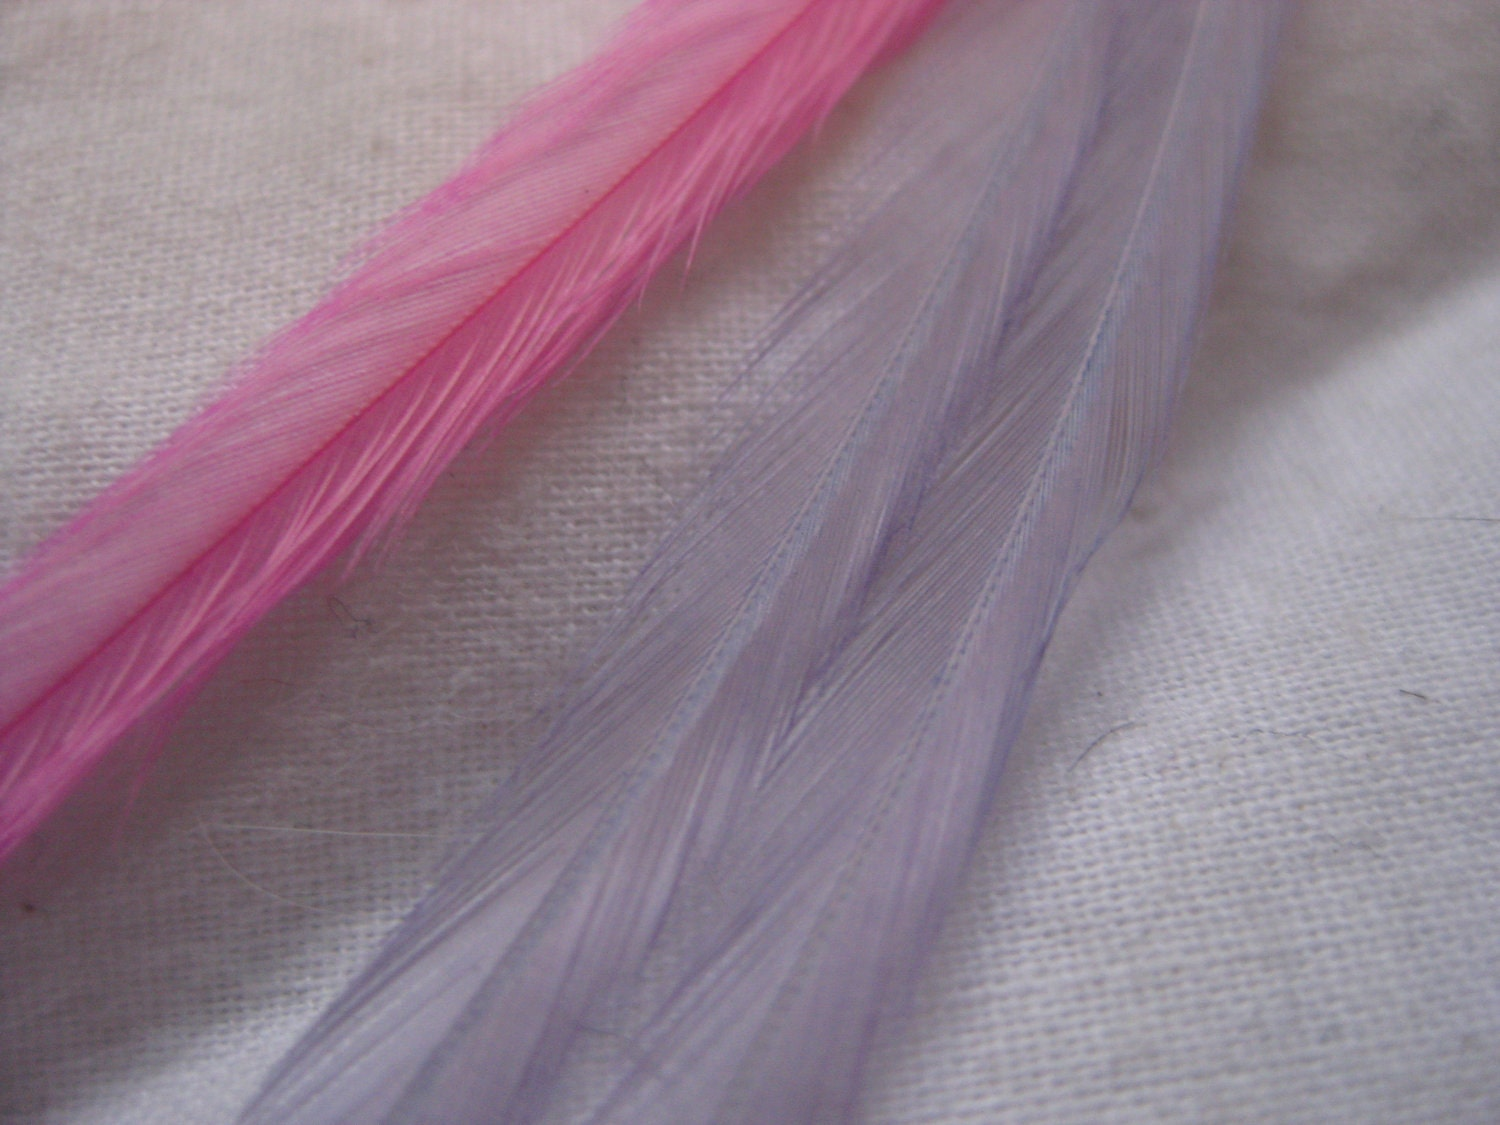 feather hair extensions san francisco. feather hair extensions san